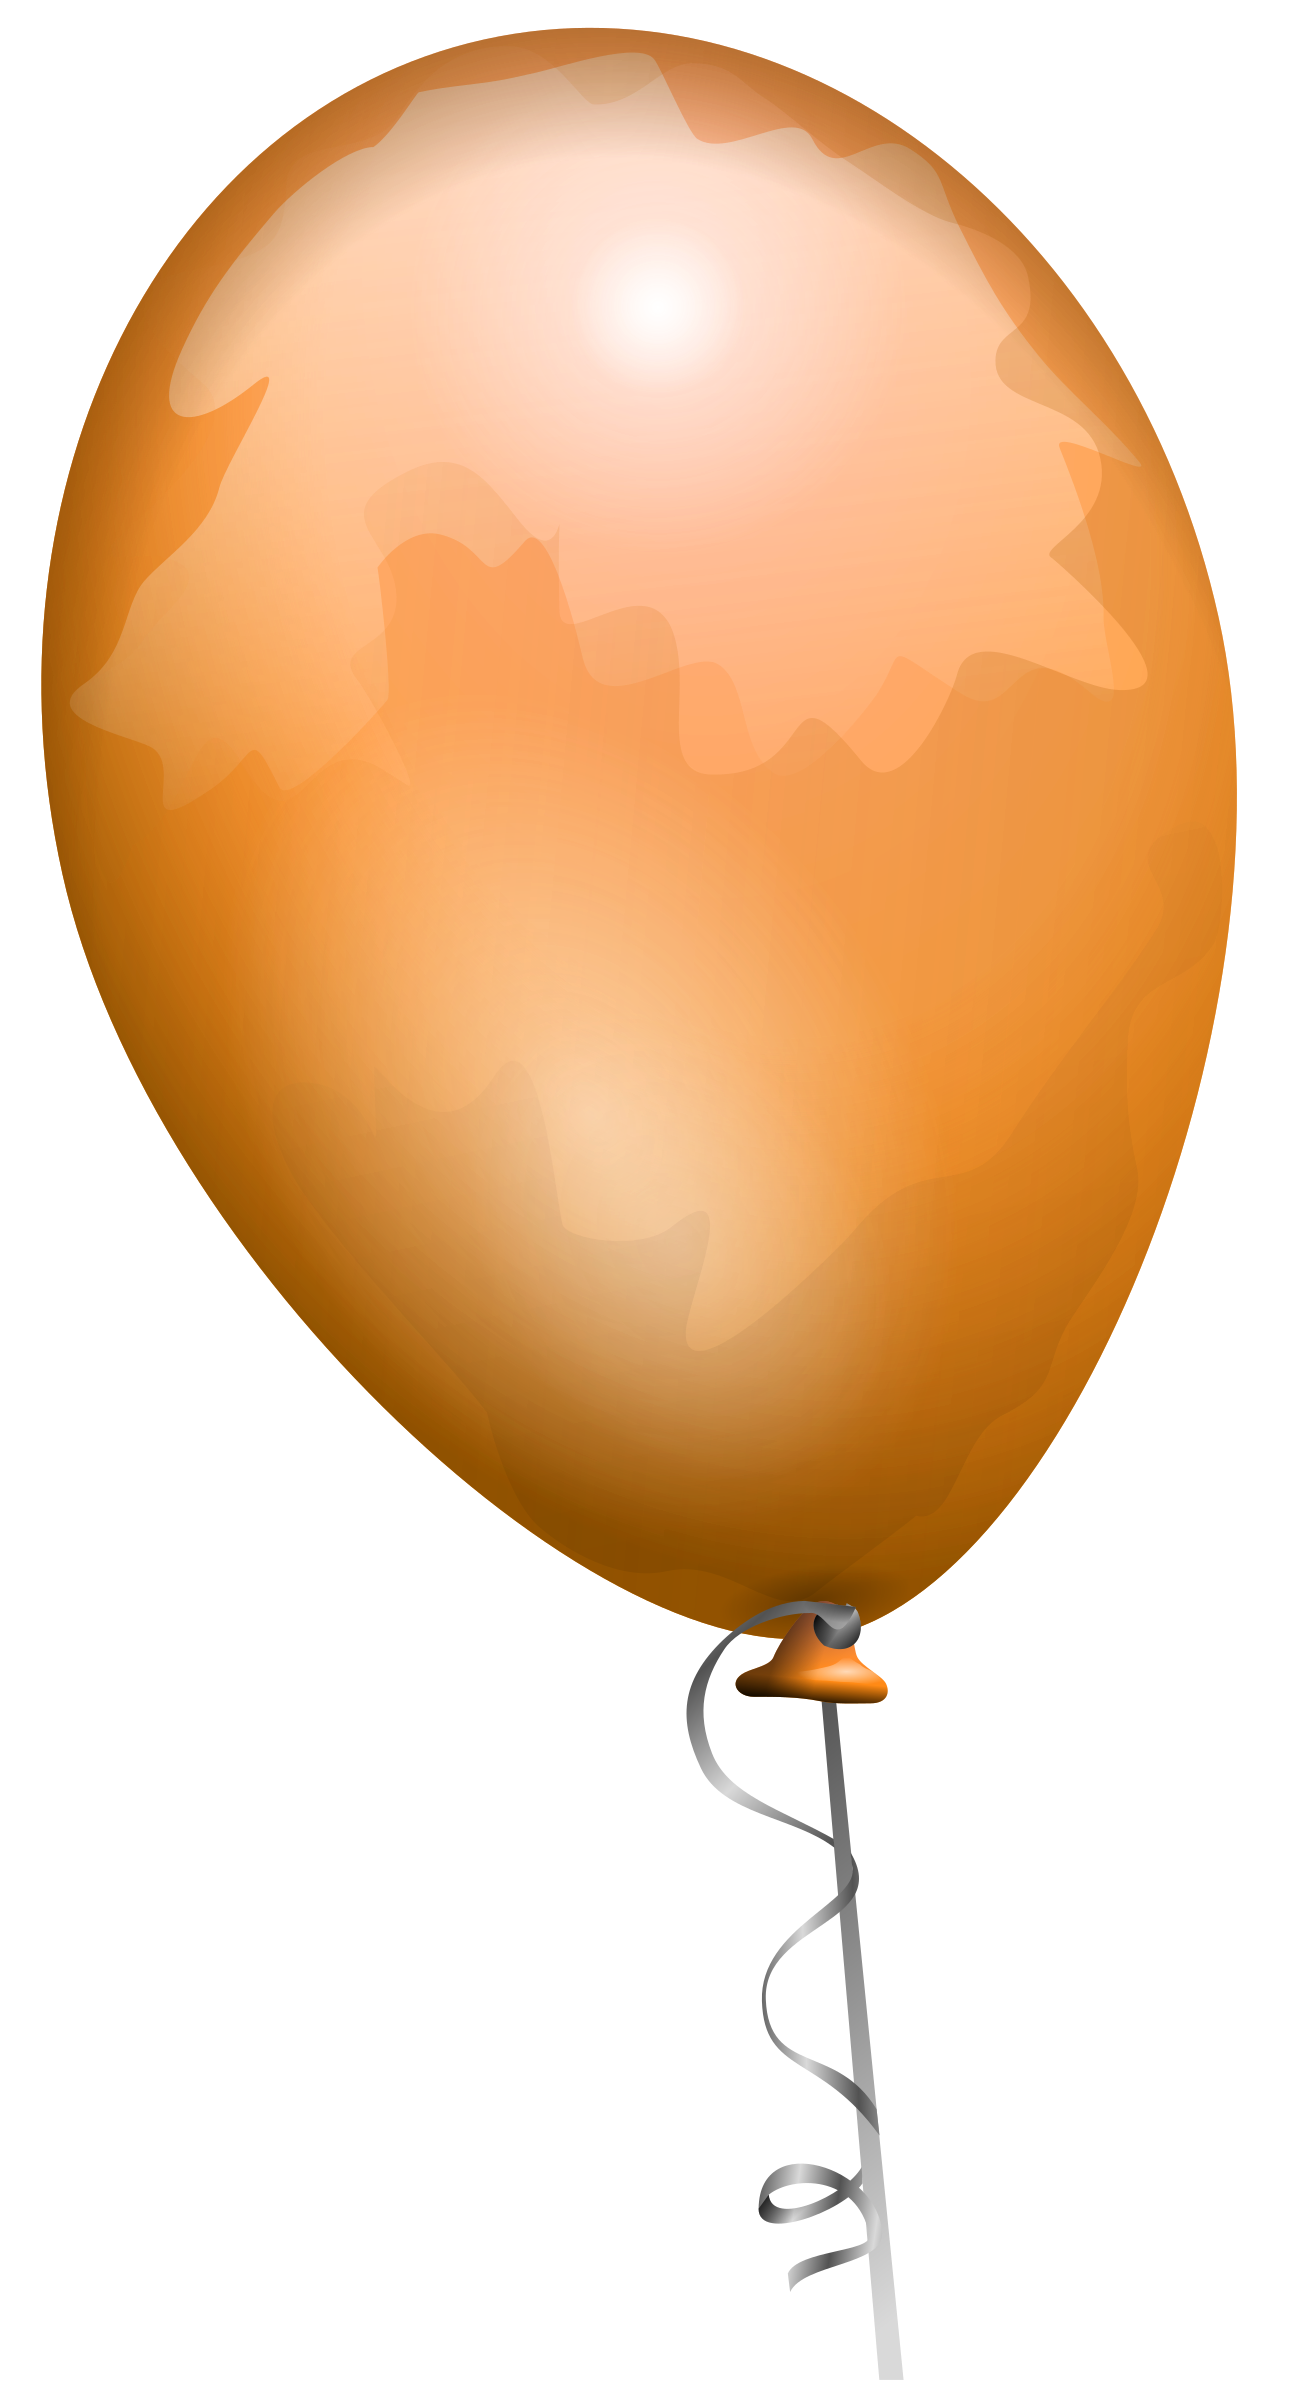 balloon-orange-aj by AJ